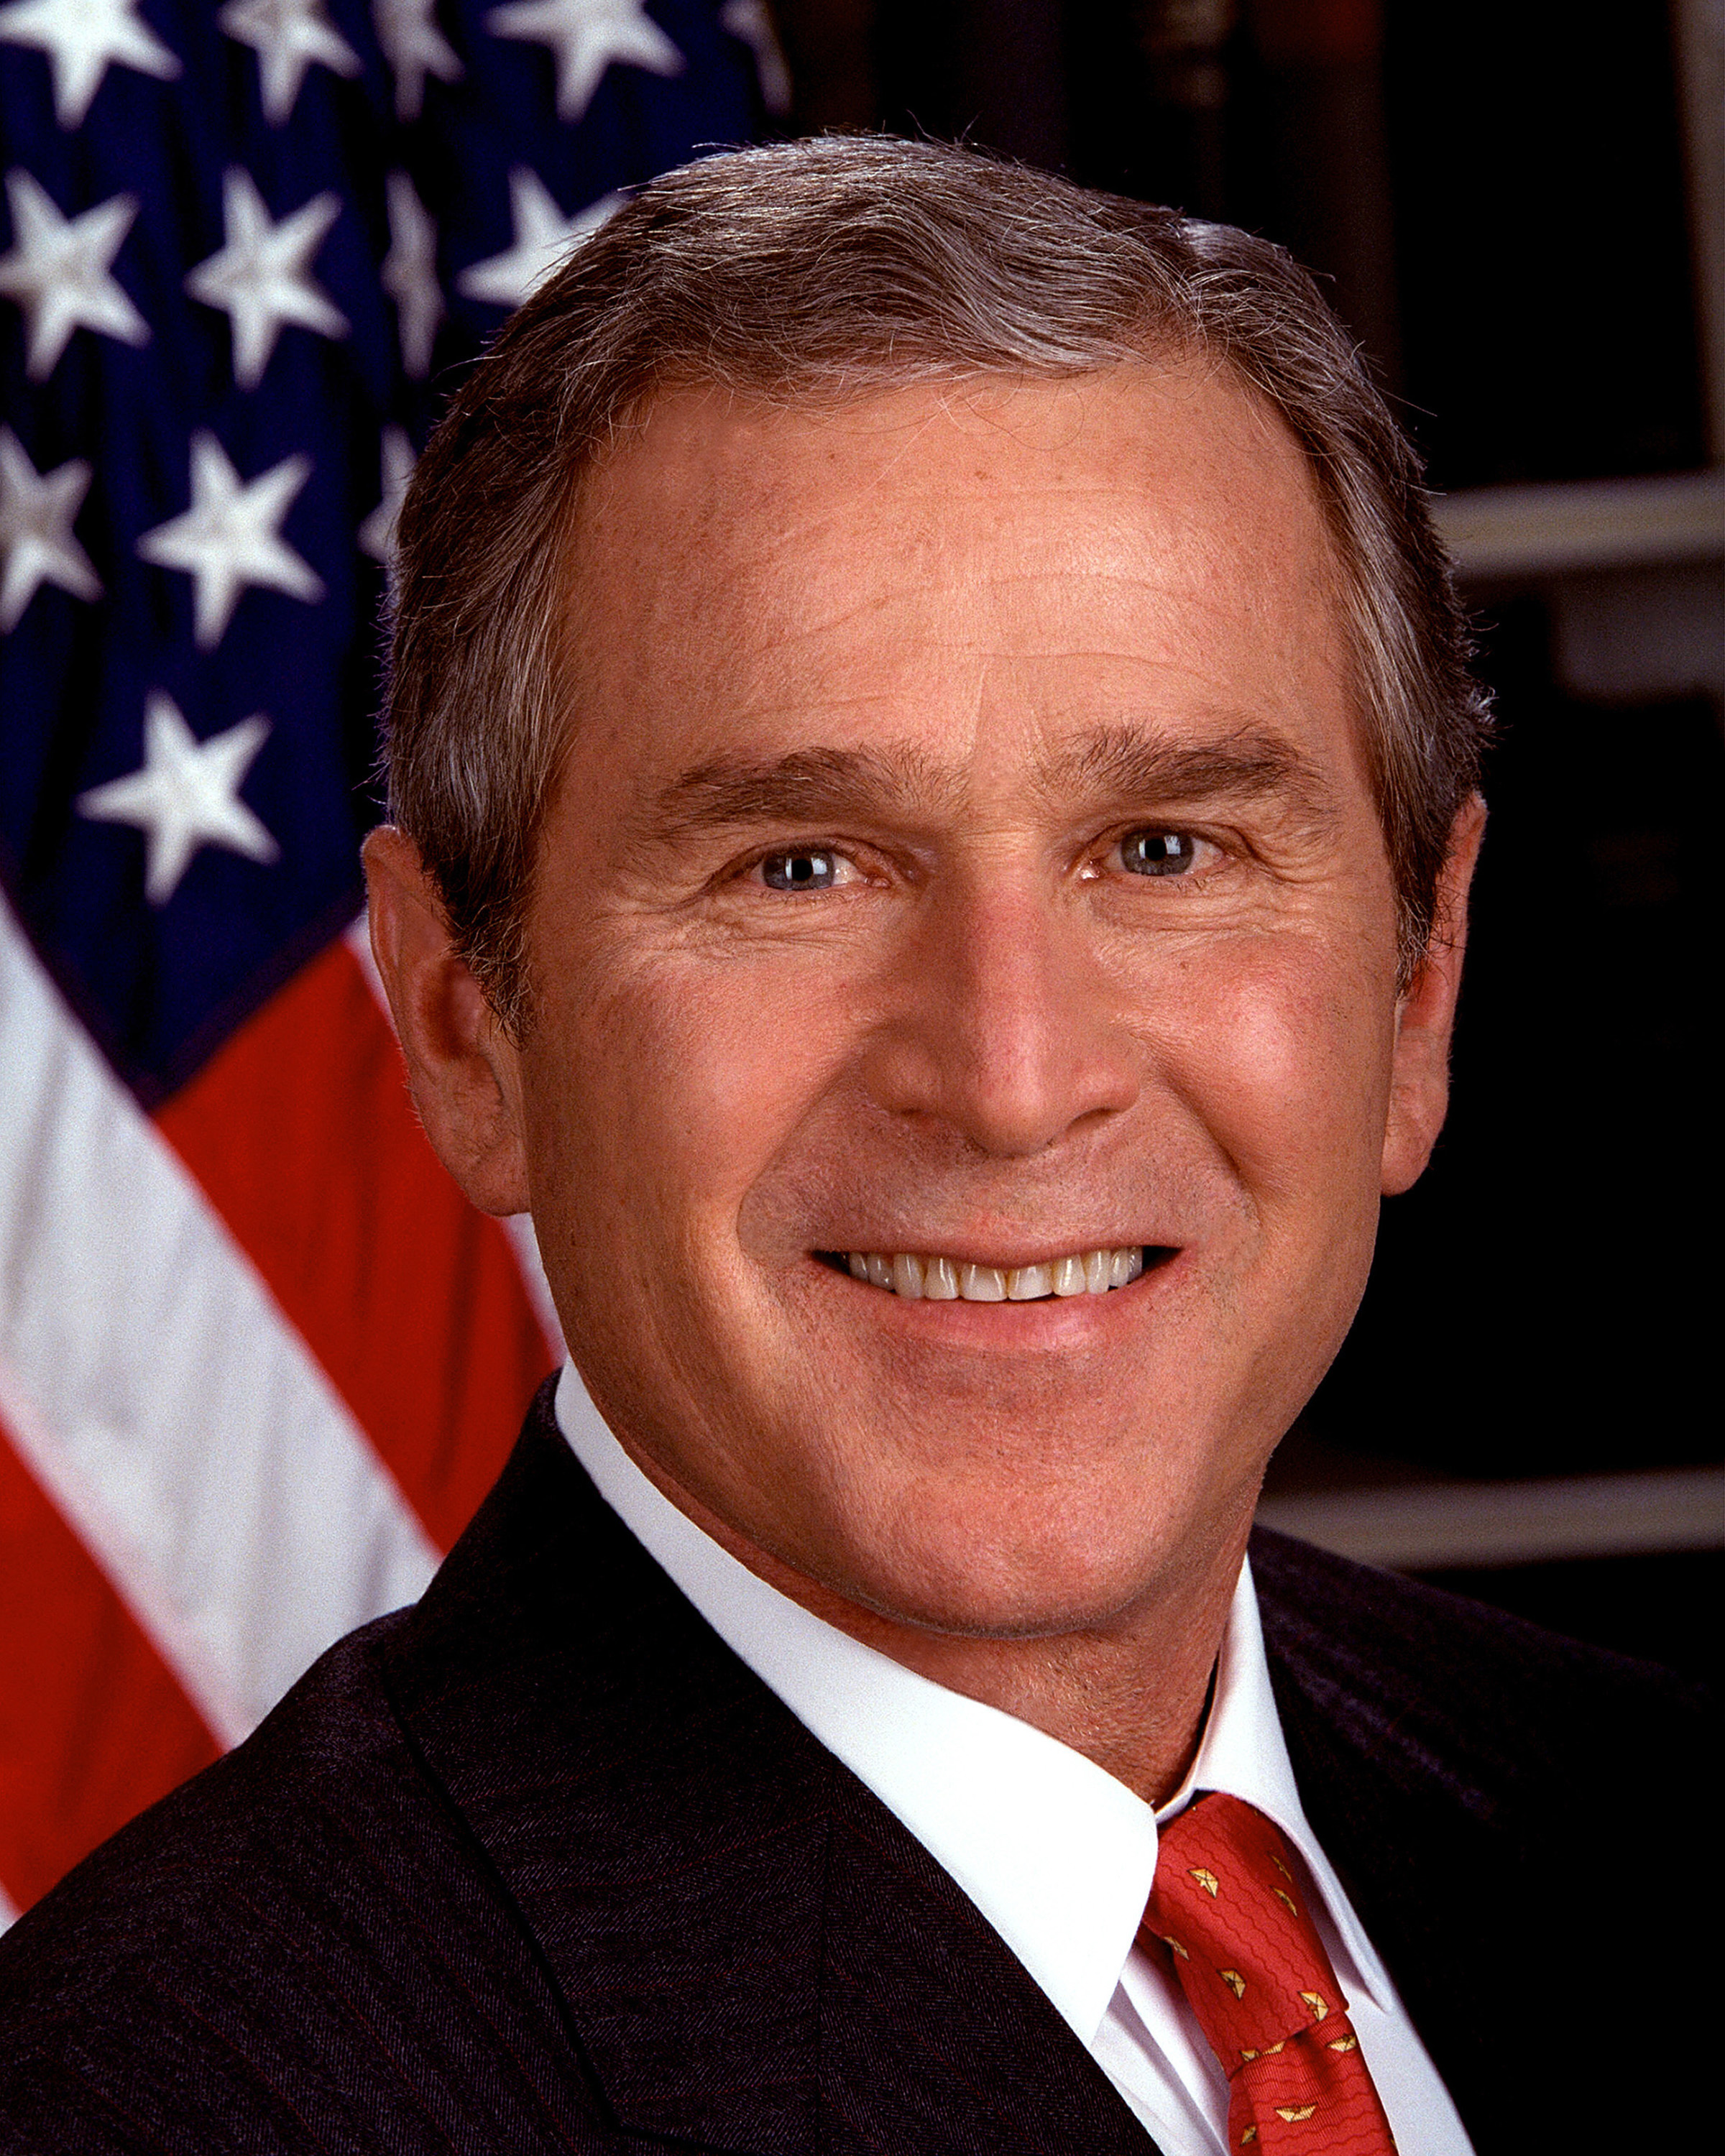 an analysis of the inaugural address of president george w bush 43th president of the united states President bush's inaugural address, washington post associate editor robert g kaiser was online to give his instant analysis on united states to.